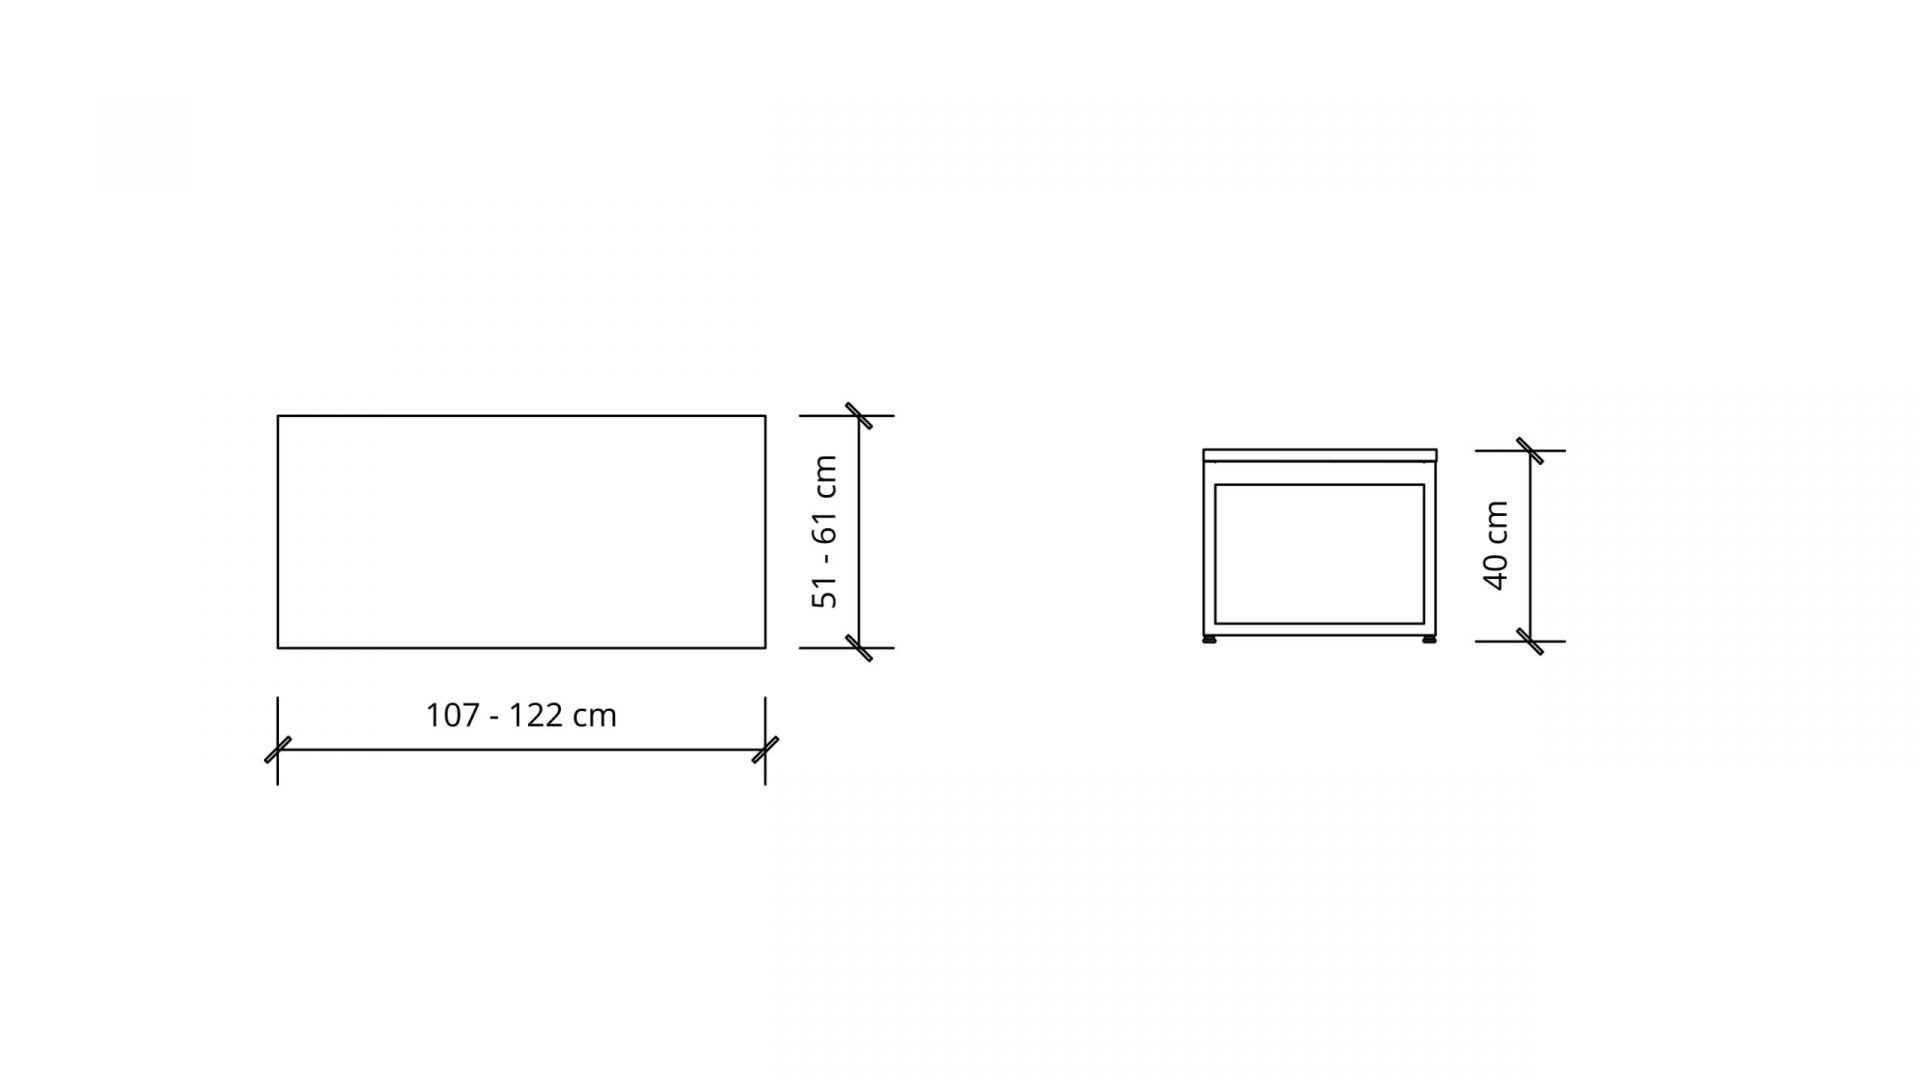 Dimensions of Rectangular Table 1658